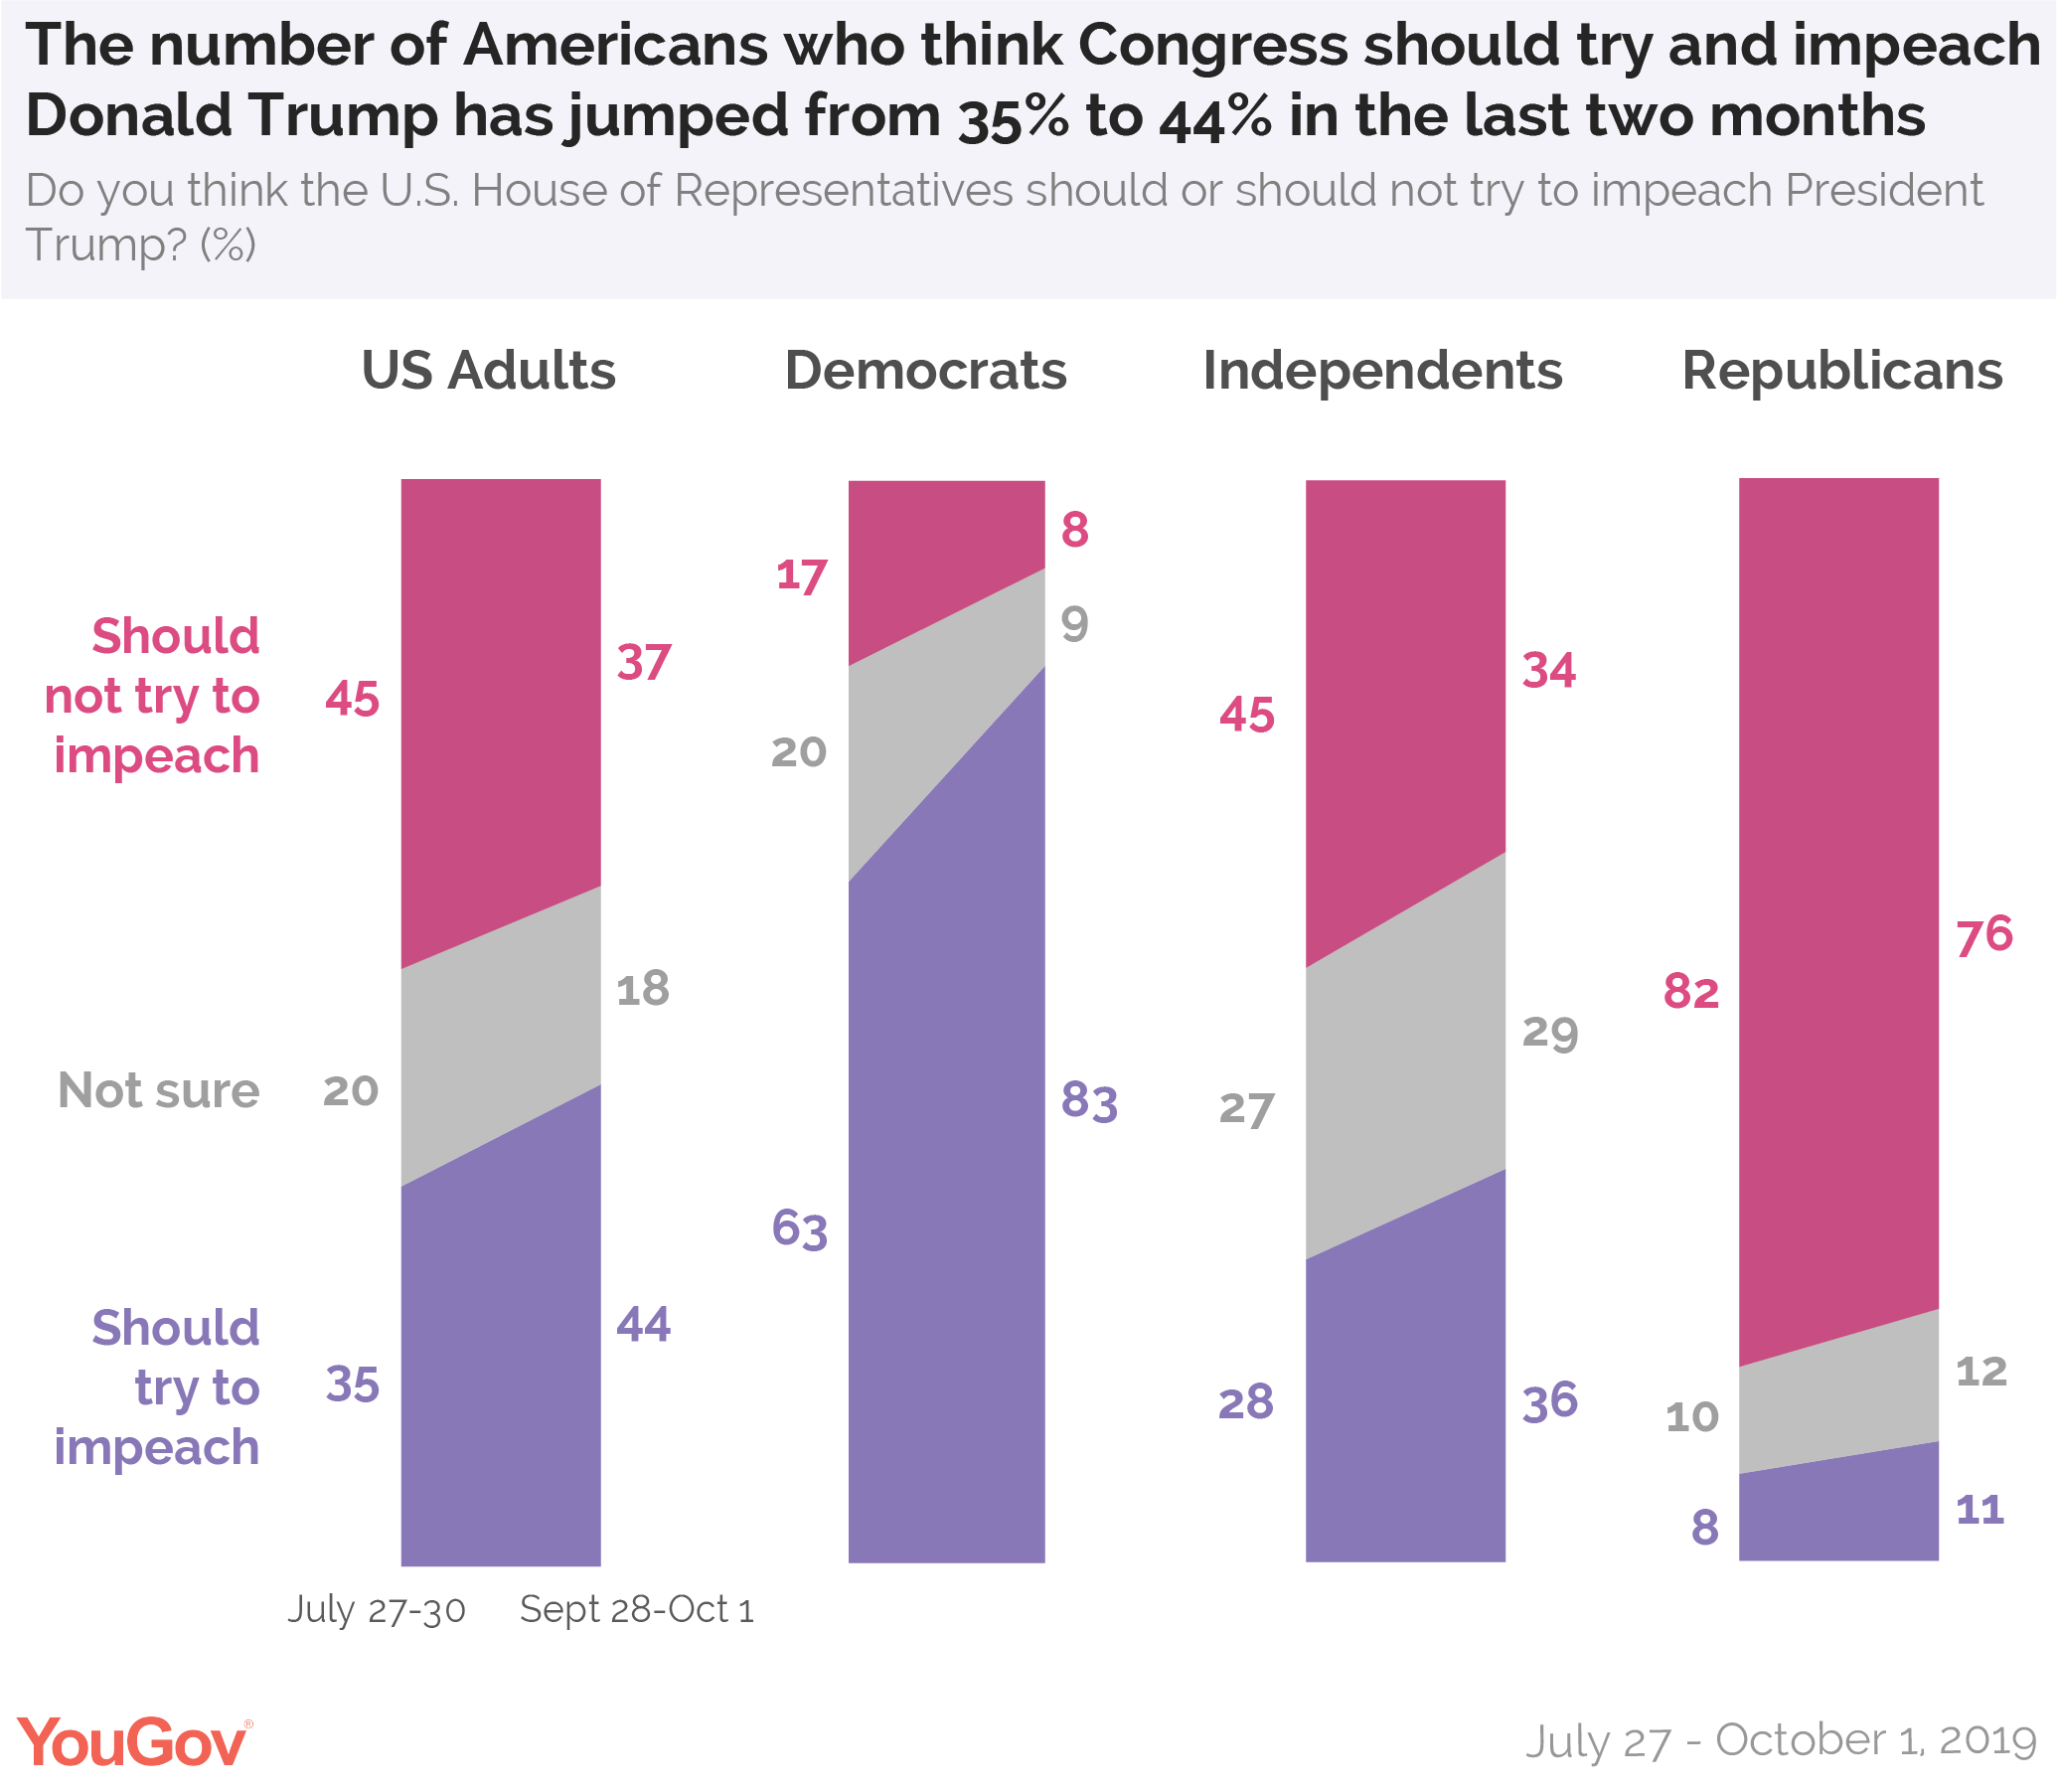 The number of Americans who think Congress should try and impeach Donald Trump has jumped from 35% to 44% in the last two months